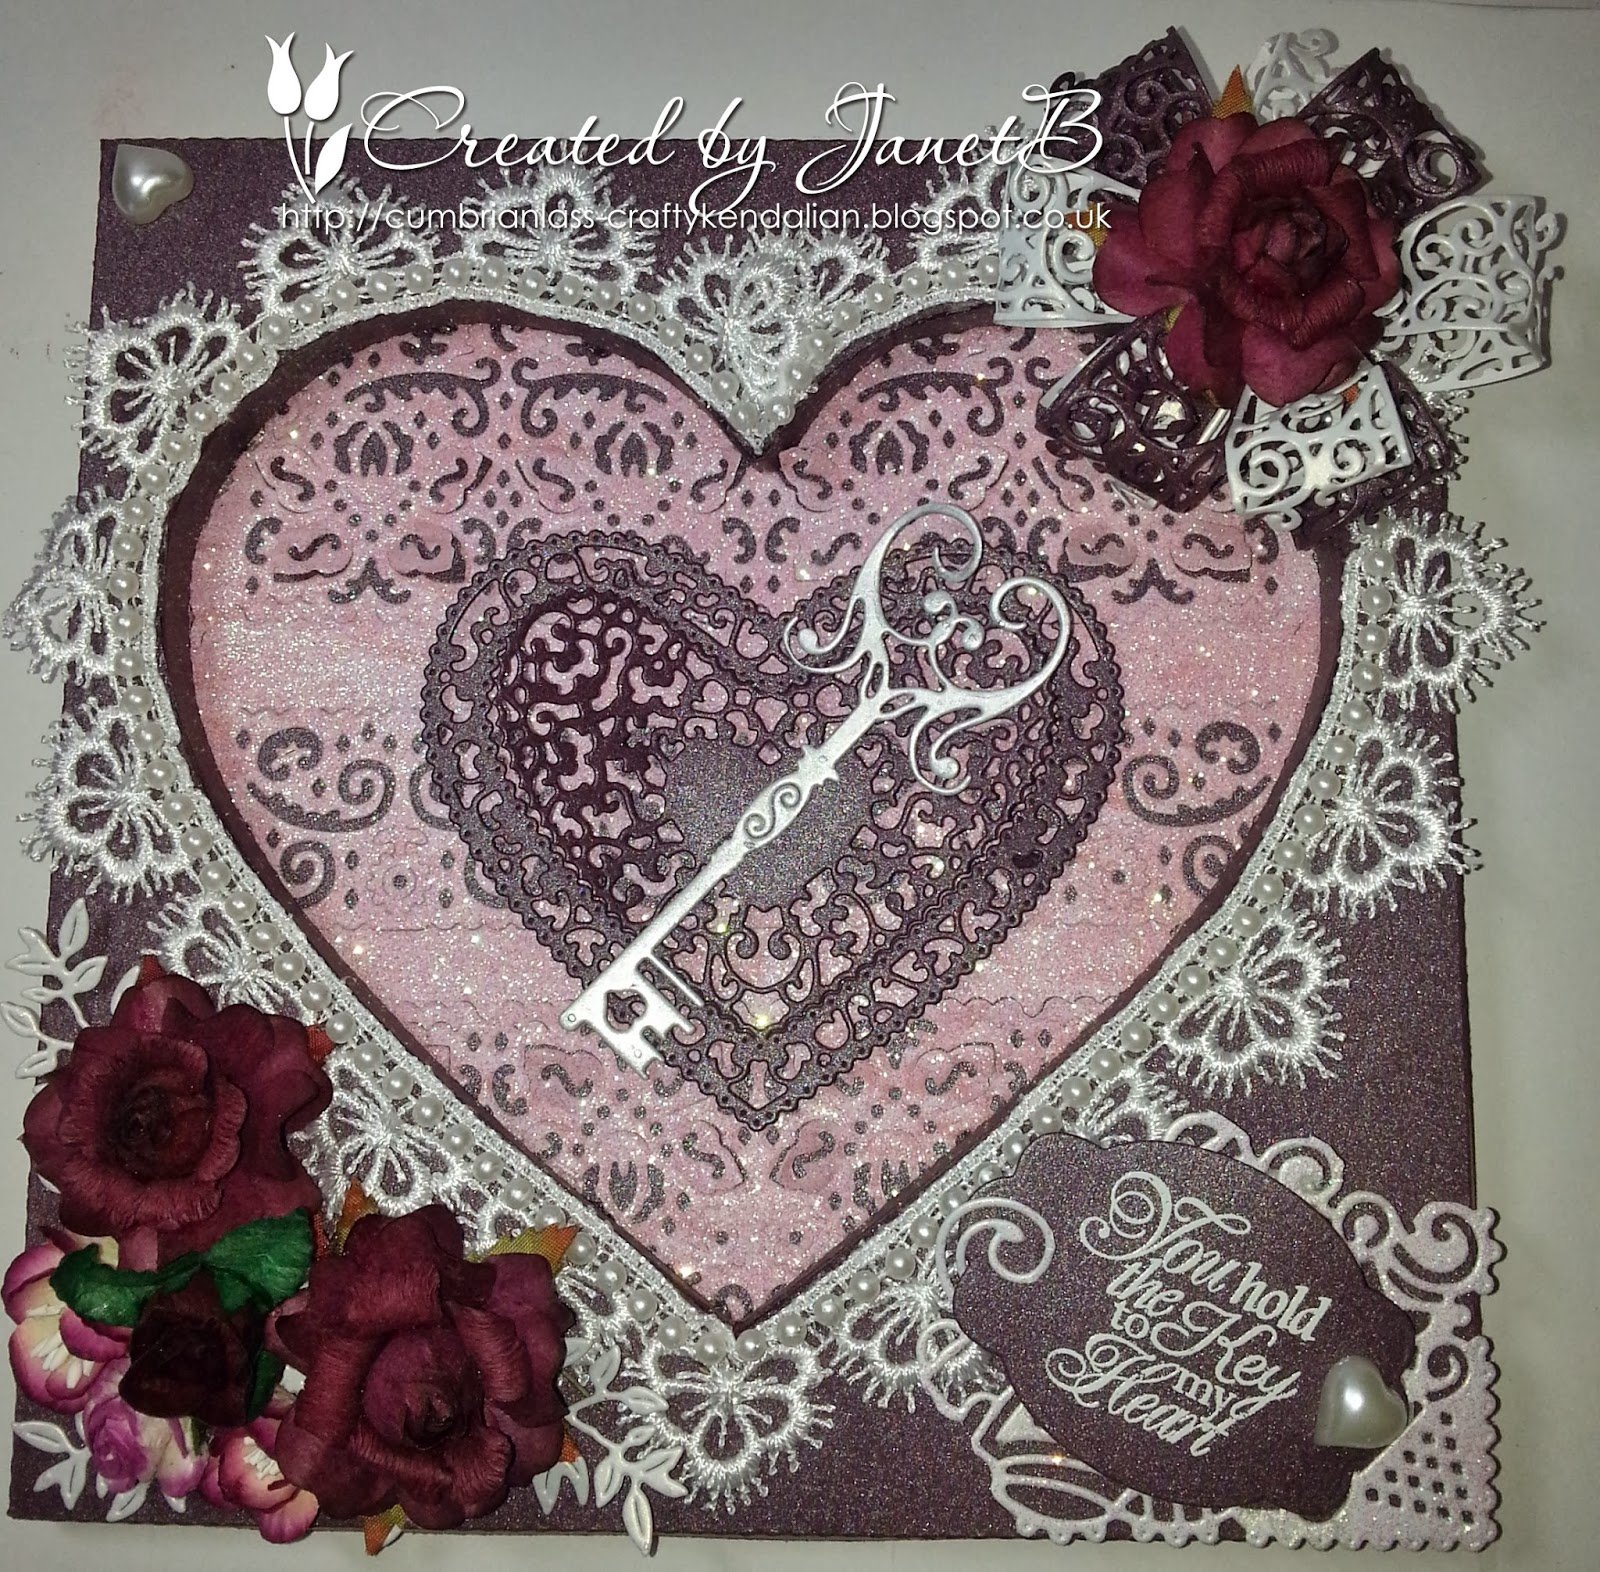 http://papermilldirect.co.uk/community/valentines-day-challenge-win-